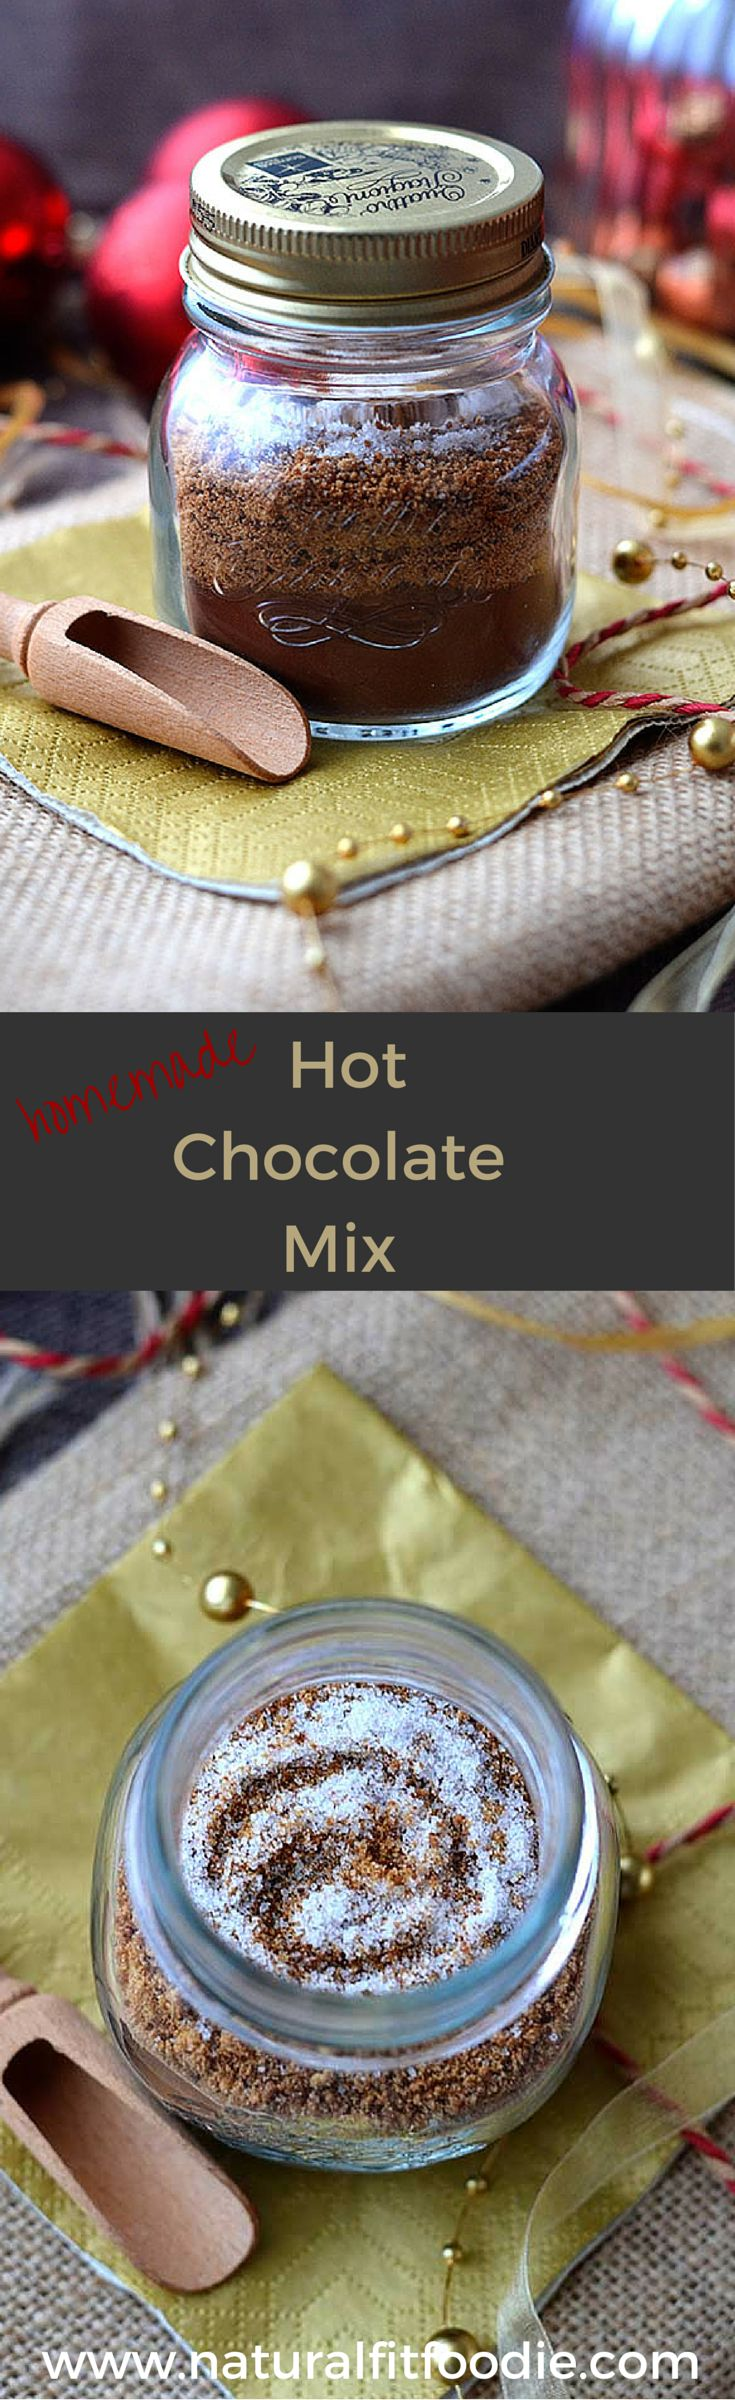 Homemade Hot Chocolate Mix Recipe - Try this Easy Homemade Hot Chocolate Mix and you'll never buy instant cocoa mixes again! Made from three simple real food ingredients it contains no milk powder. Makes a decadent creamy hot chocolate the whole family will love! Perfect way to warm up during those cold winter months.